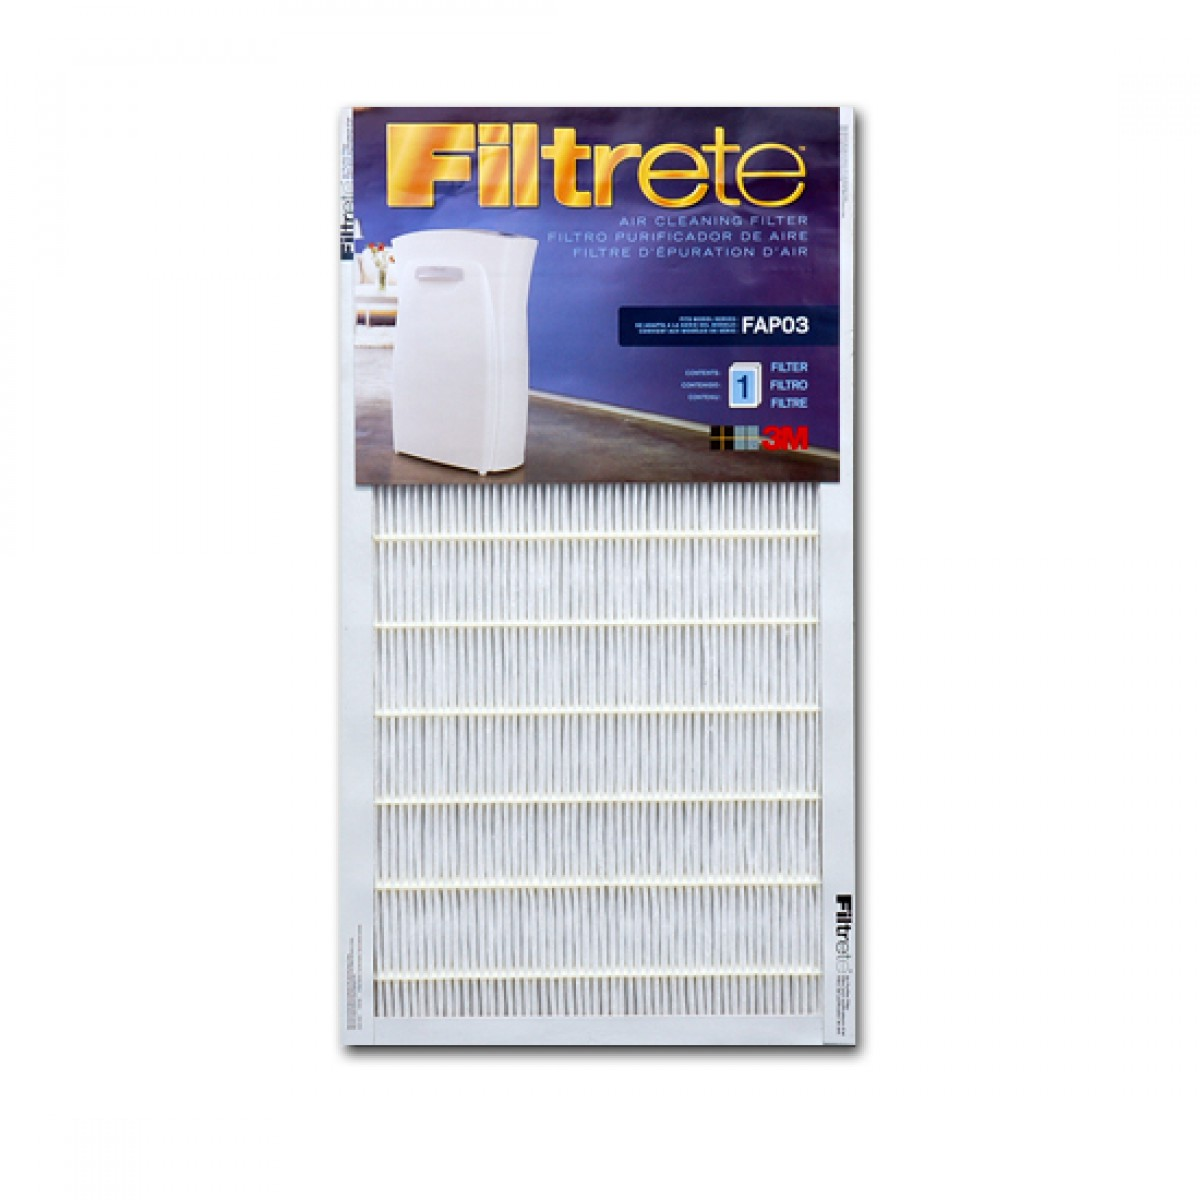 3m filtrete fapf03 air purifier filter. Black Bedroom Furniture Sets. Home Design Ideas